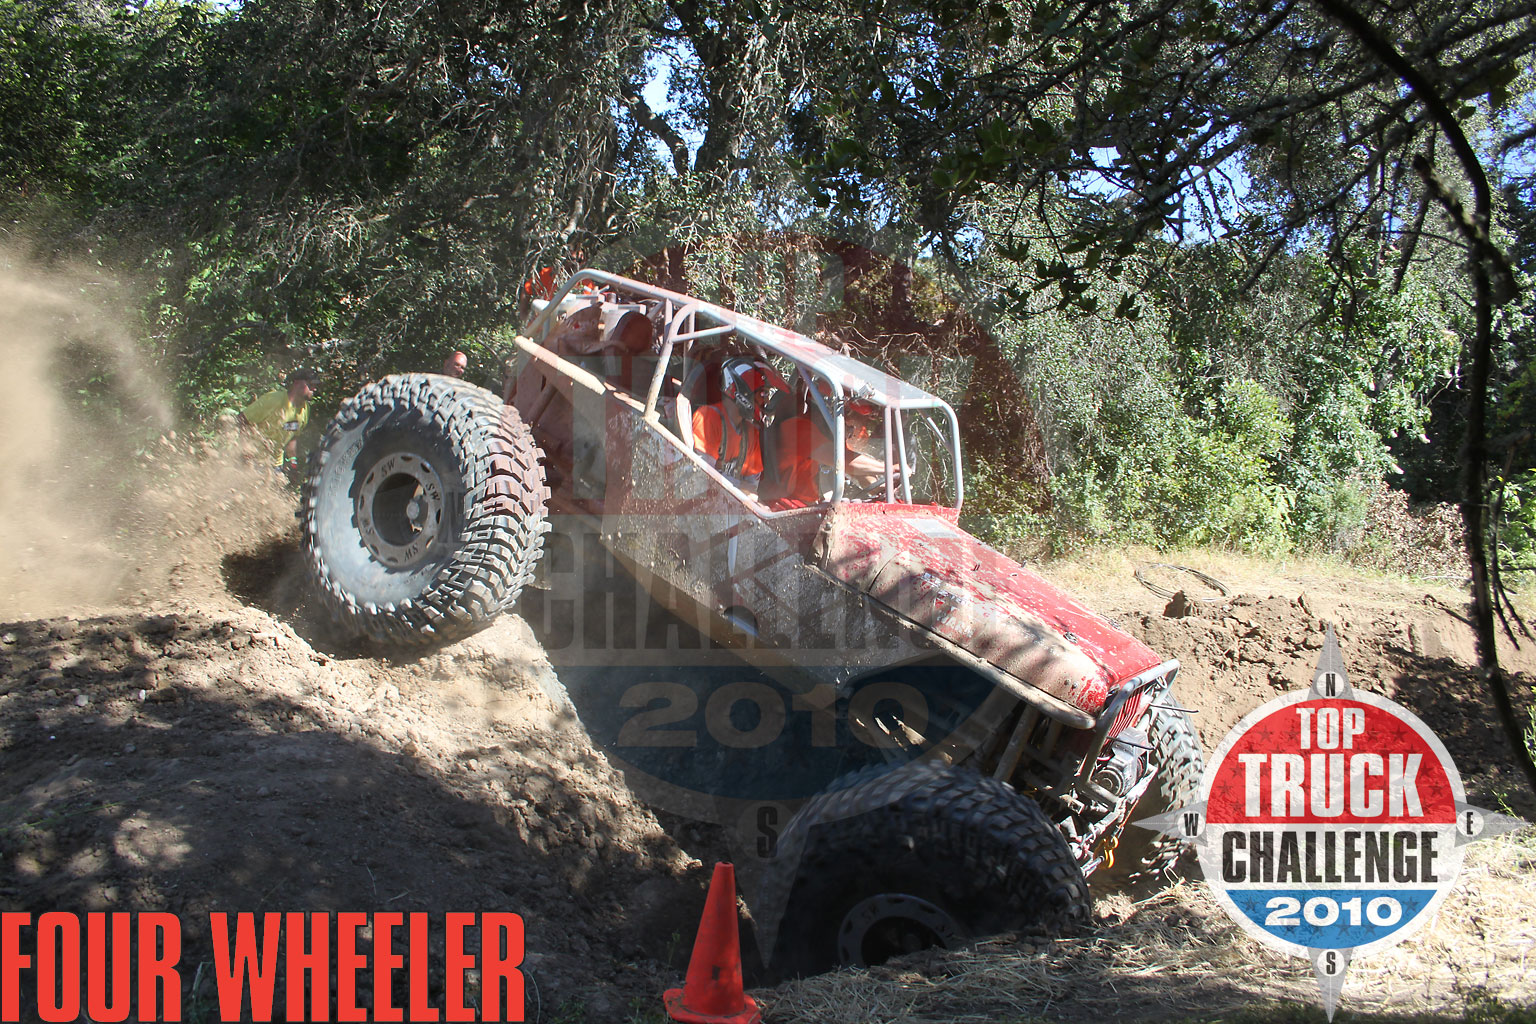 129 1006 4807+2010 top truck challenge hill climb+mike karwath 2009 tube chassis yj buggy